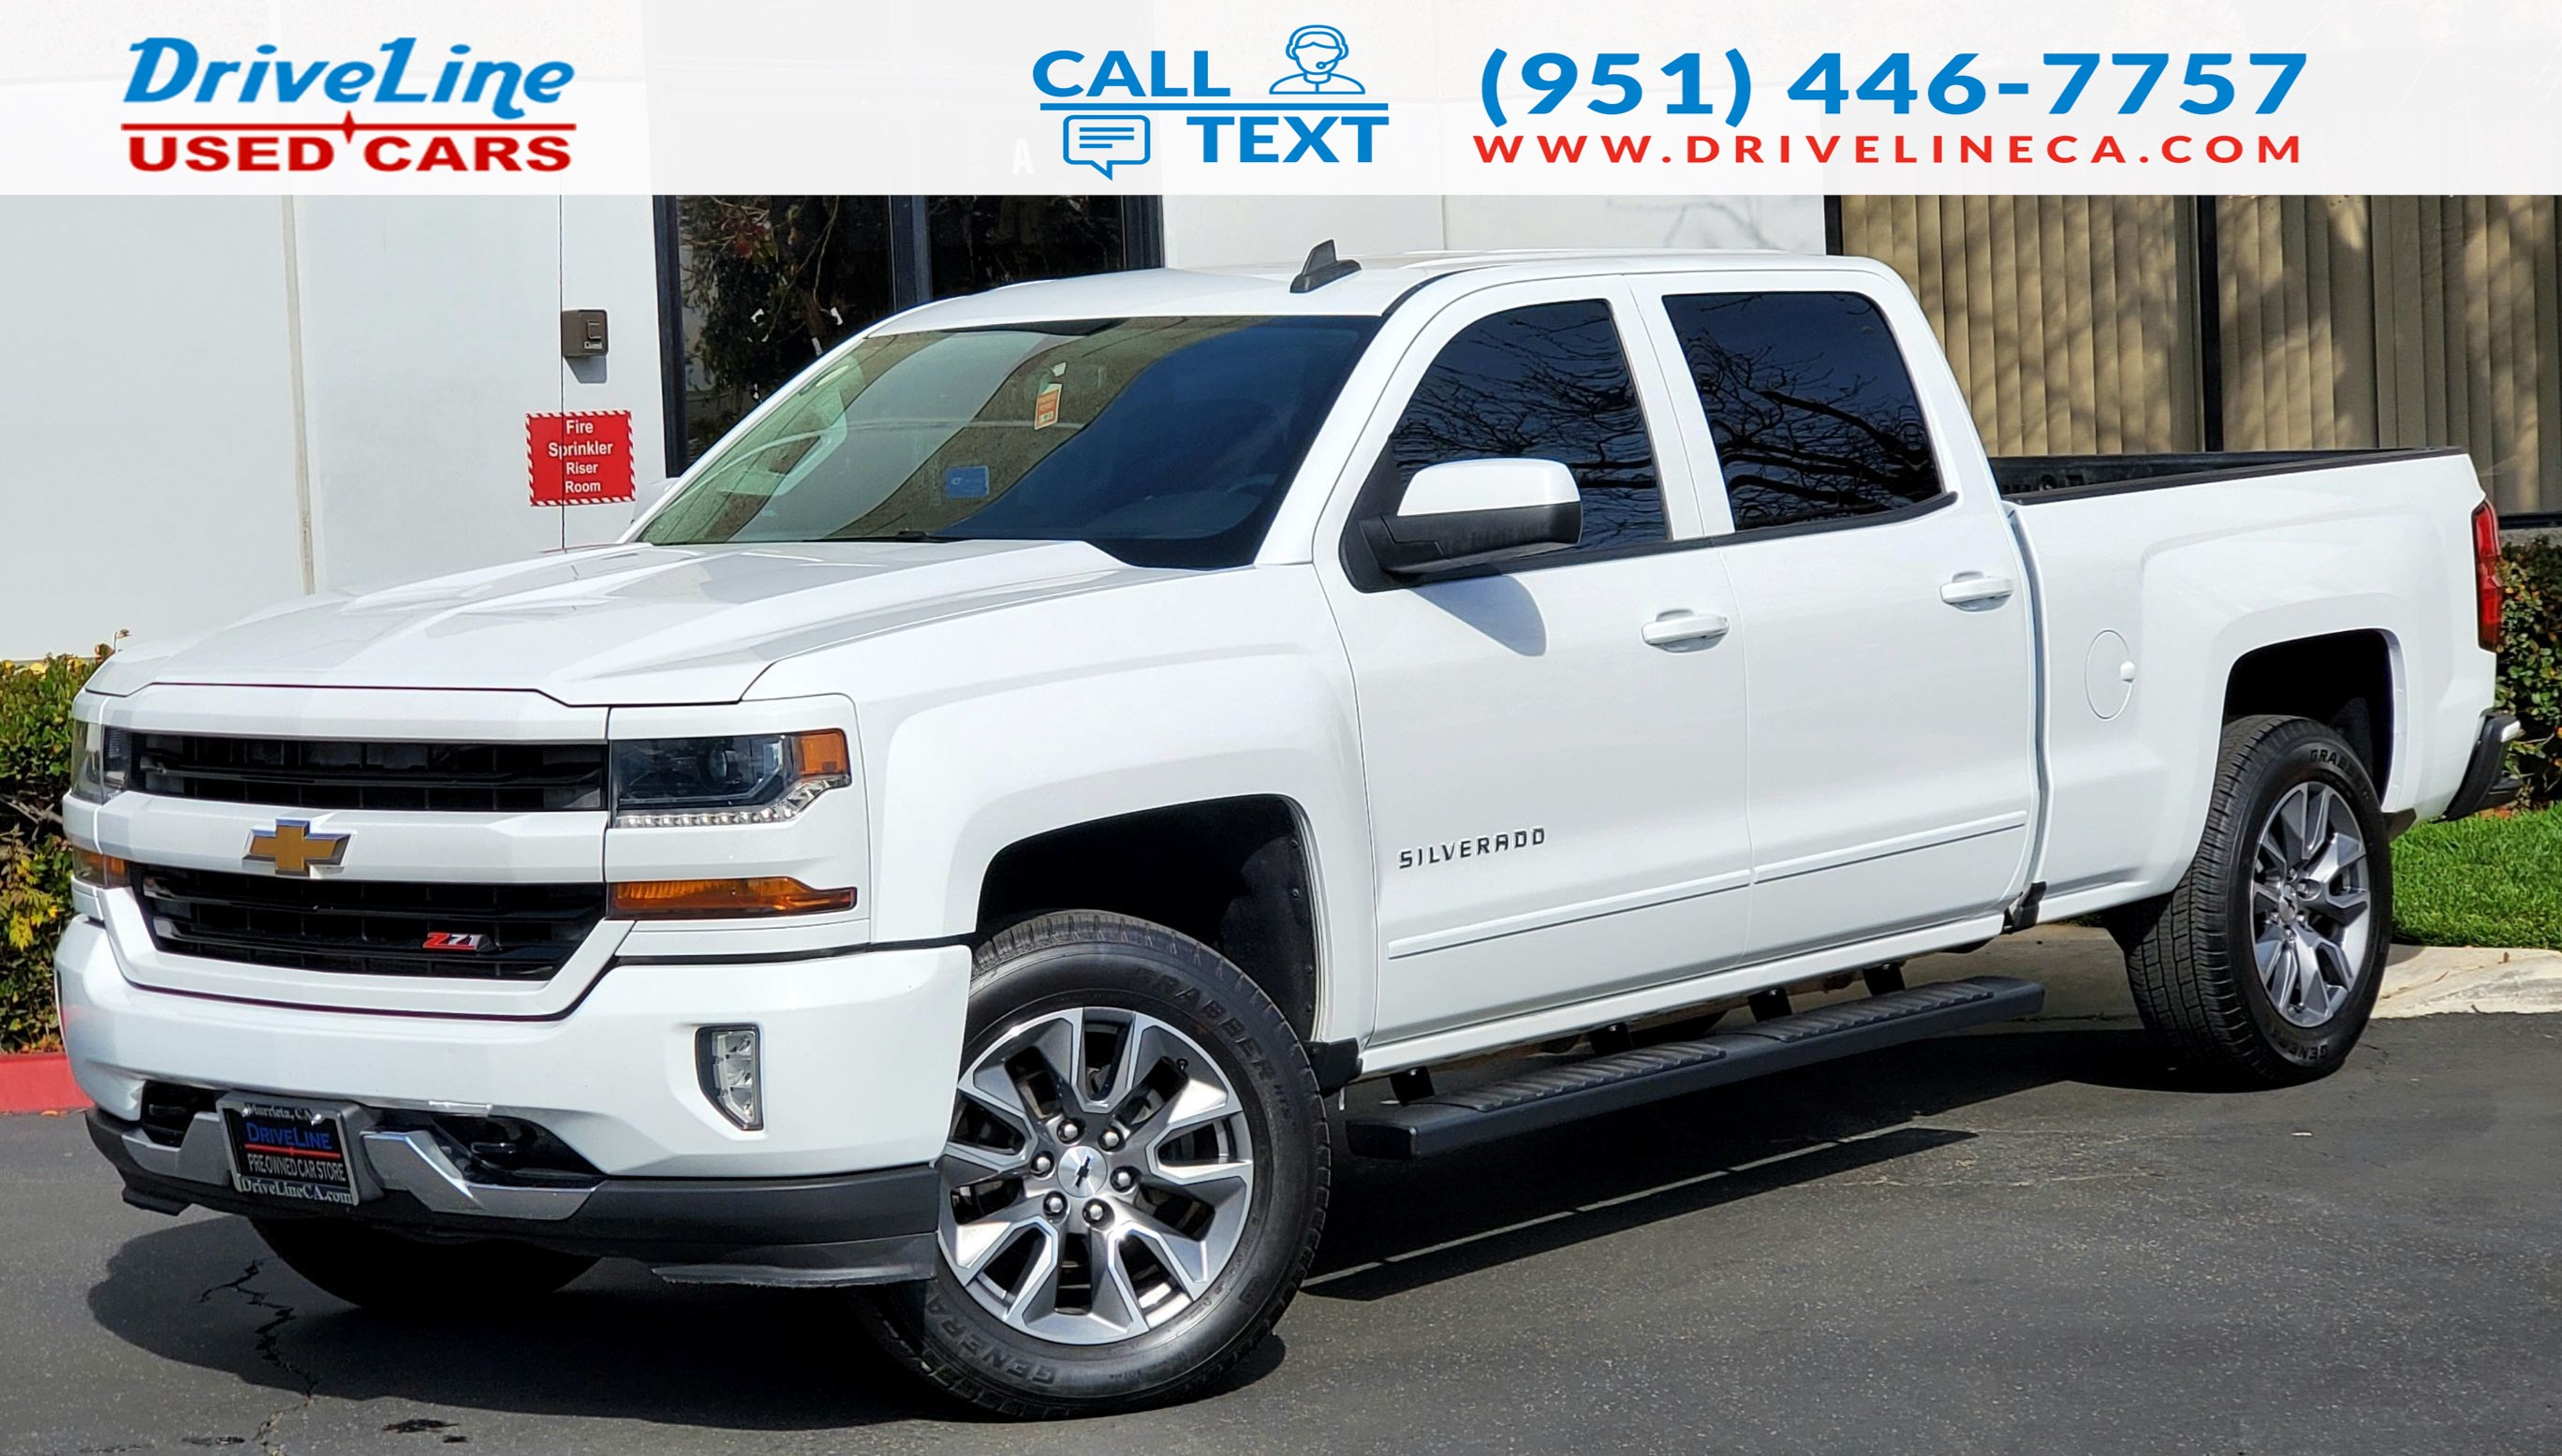 2016 Chevrolet Silverado 1500 LT - Z71 Edition - 4WD - Lifted Front - Long Bed